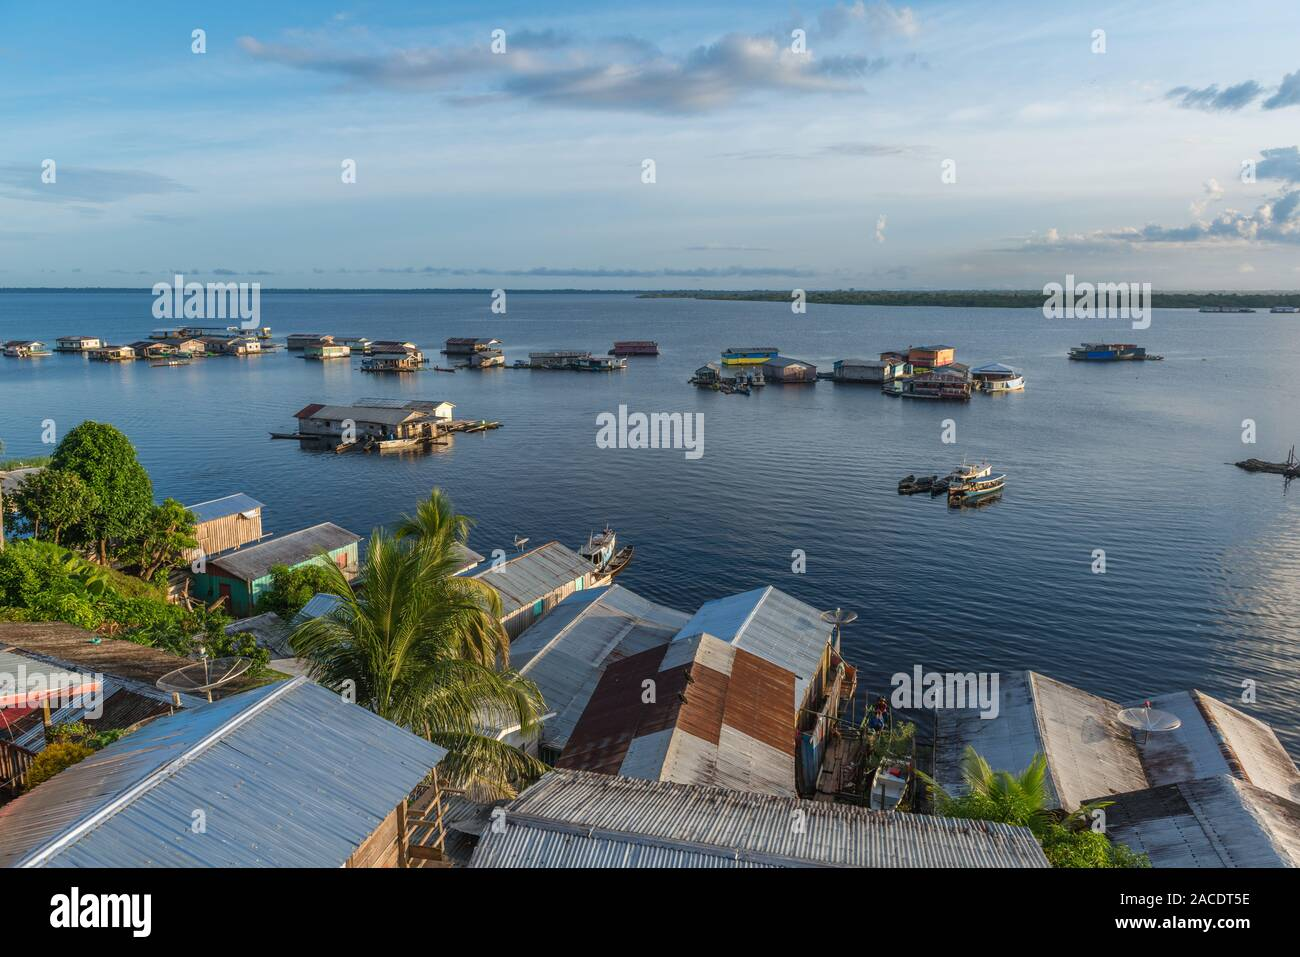 Swimming houses on Lake Tefé, small town of Tefé on Solimoes River, Amazon State, Northern Brasilia, Latin America Stock Photo